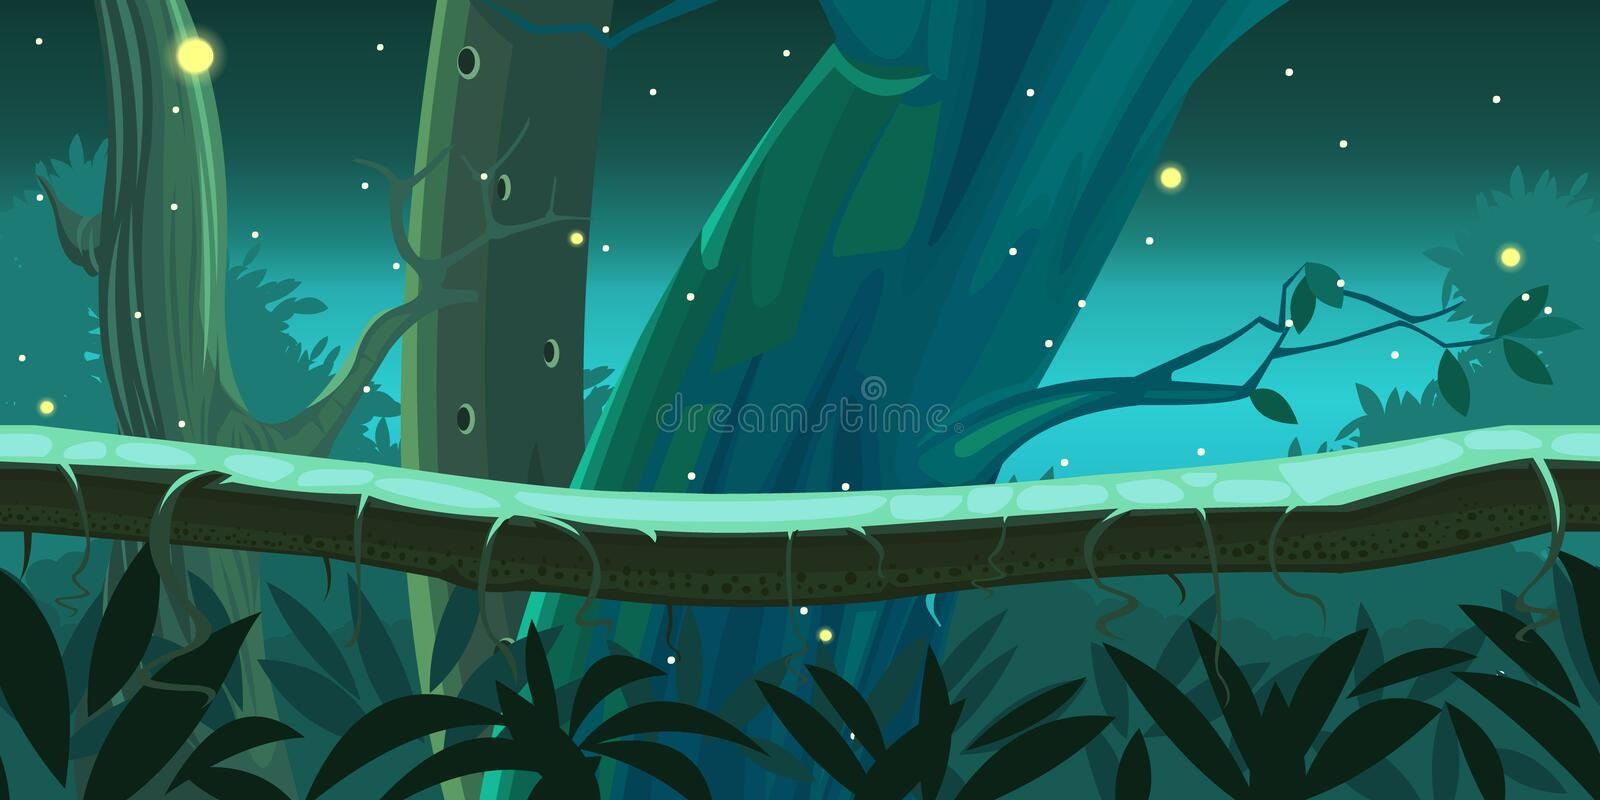 Game backgrounds vector illustration